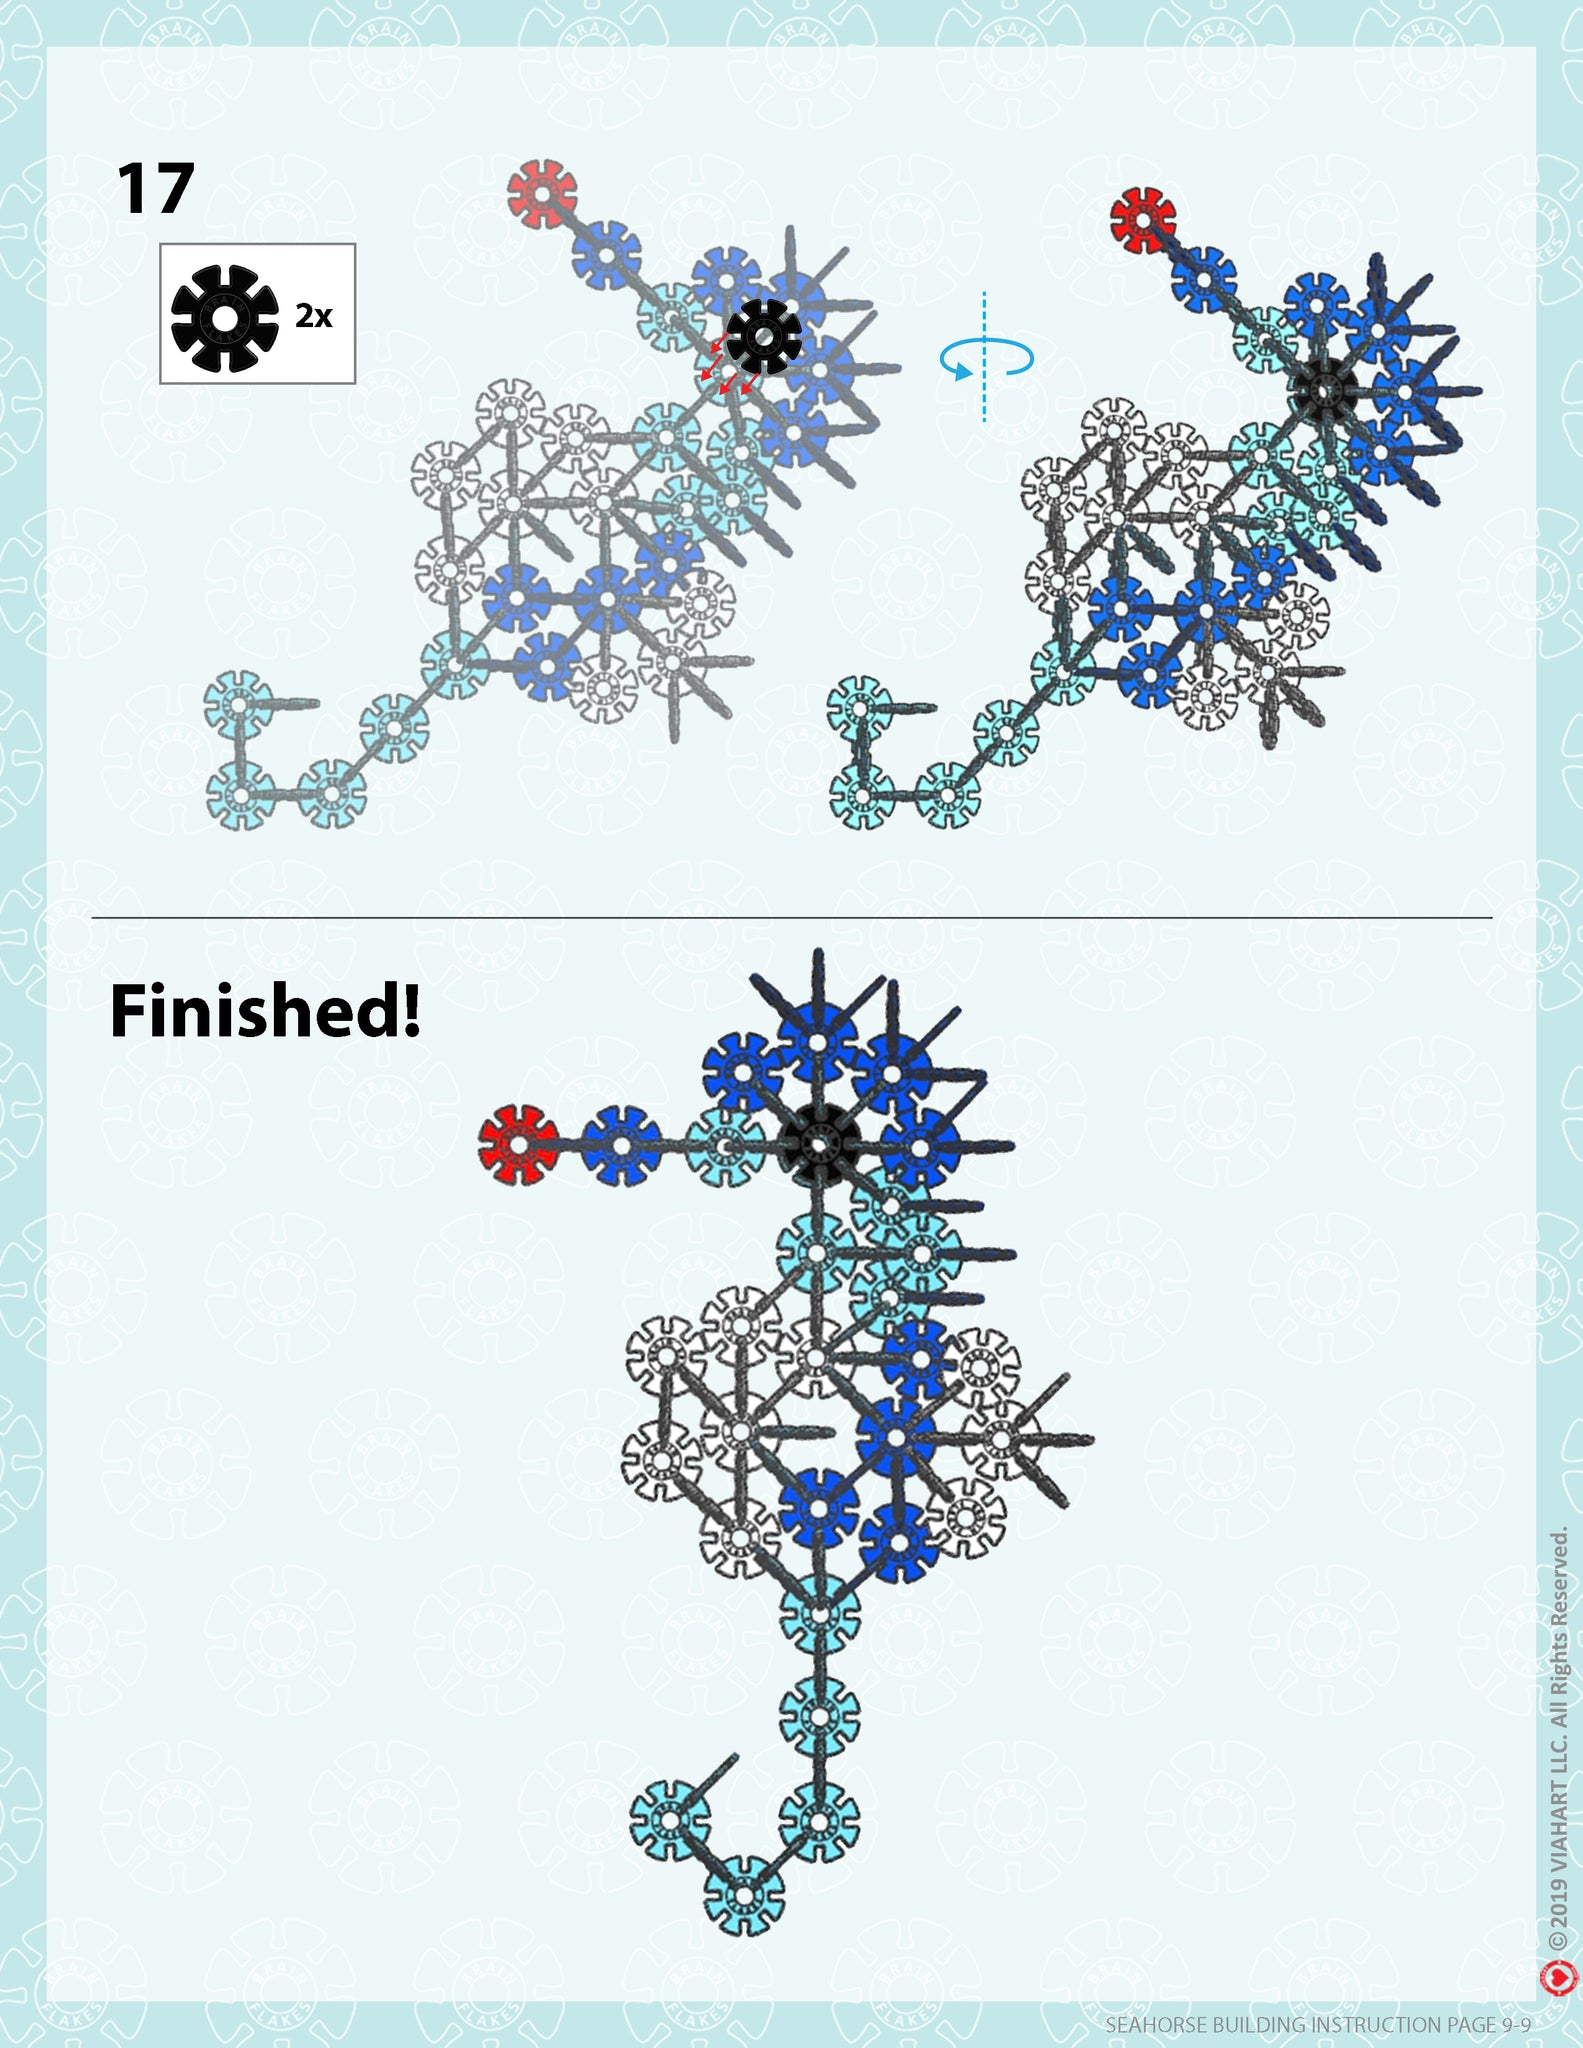 Brain Flakes Seahorse building instructions 9